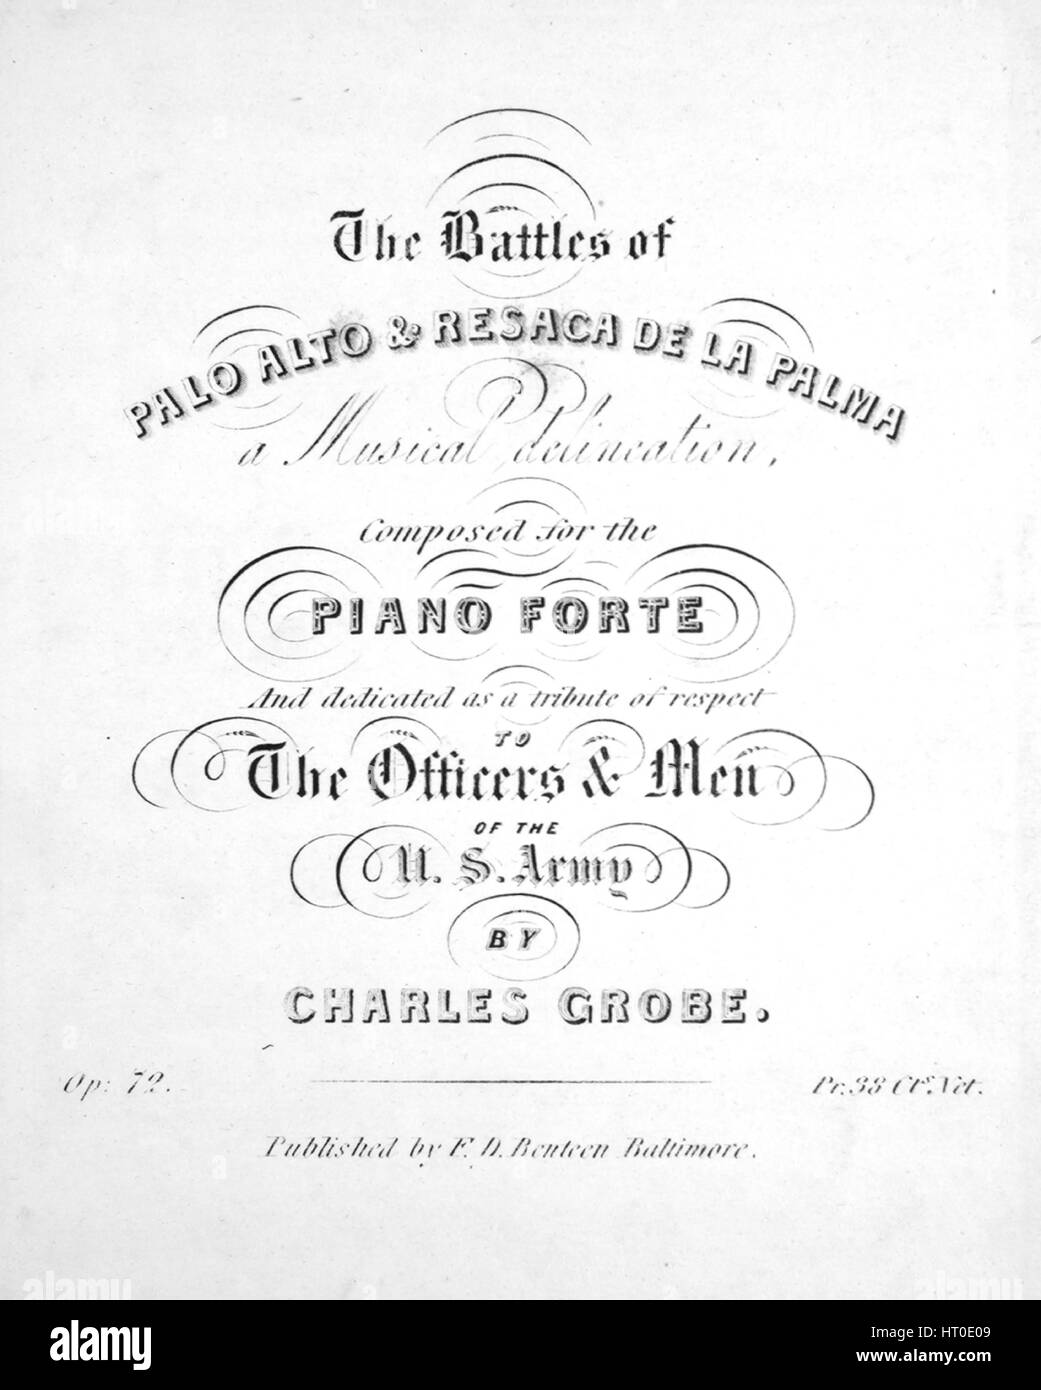 Sheet music cover image of the song 'The Battles of Palo Alto and Resaca de la Palma A Musical Delineation', - Stock Image